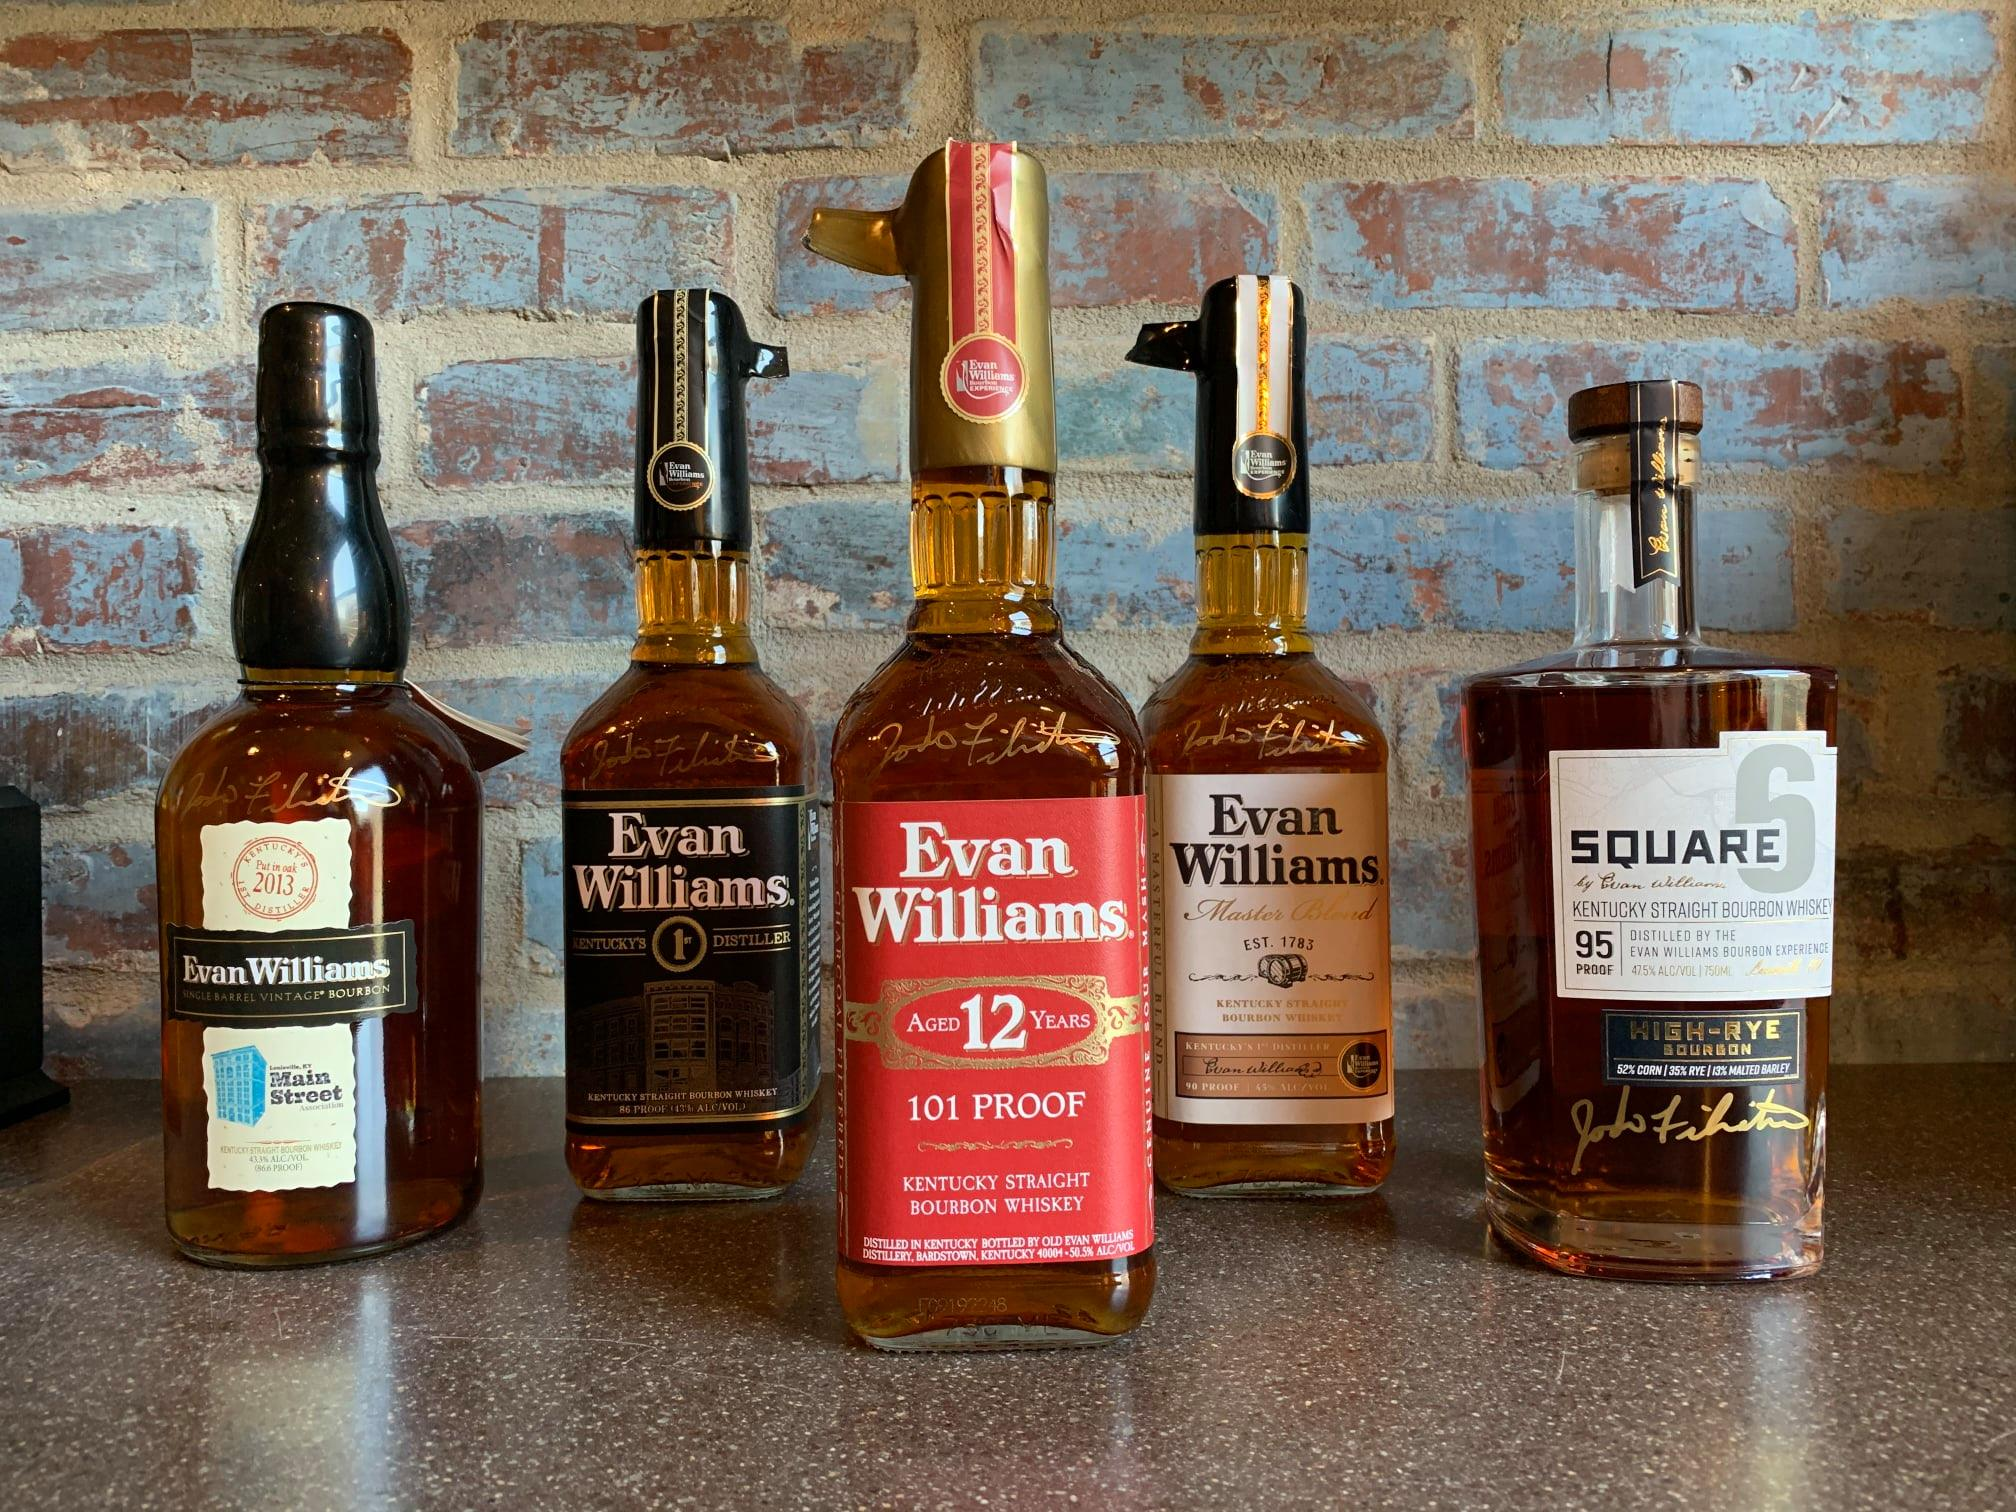 NATIONAL BOURBON DAY SPECIAL EVENT